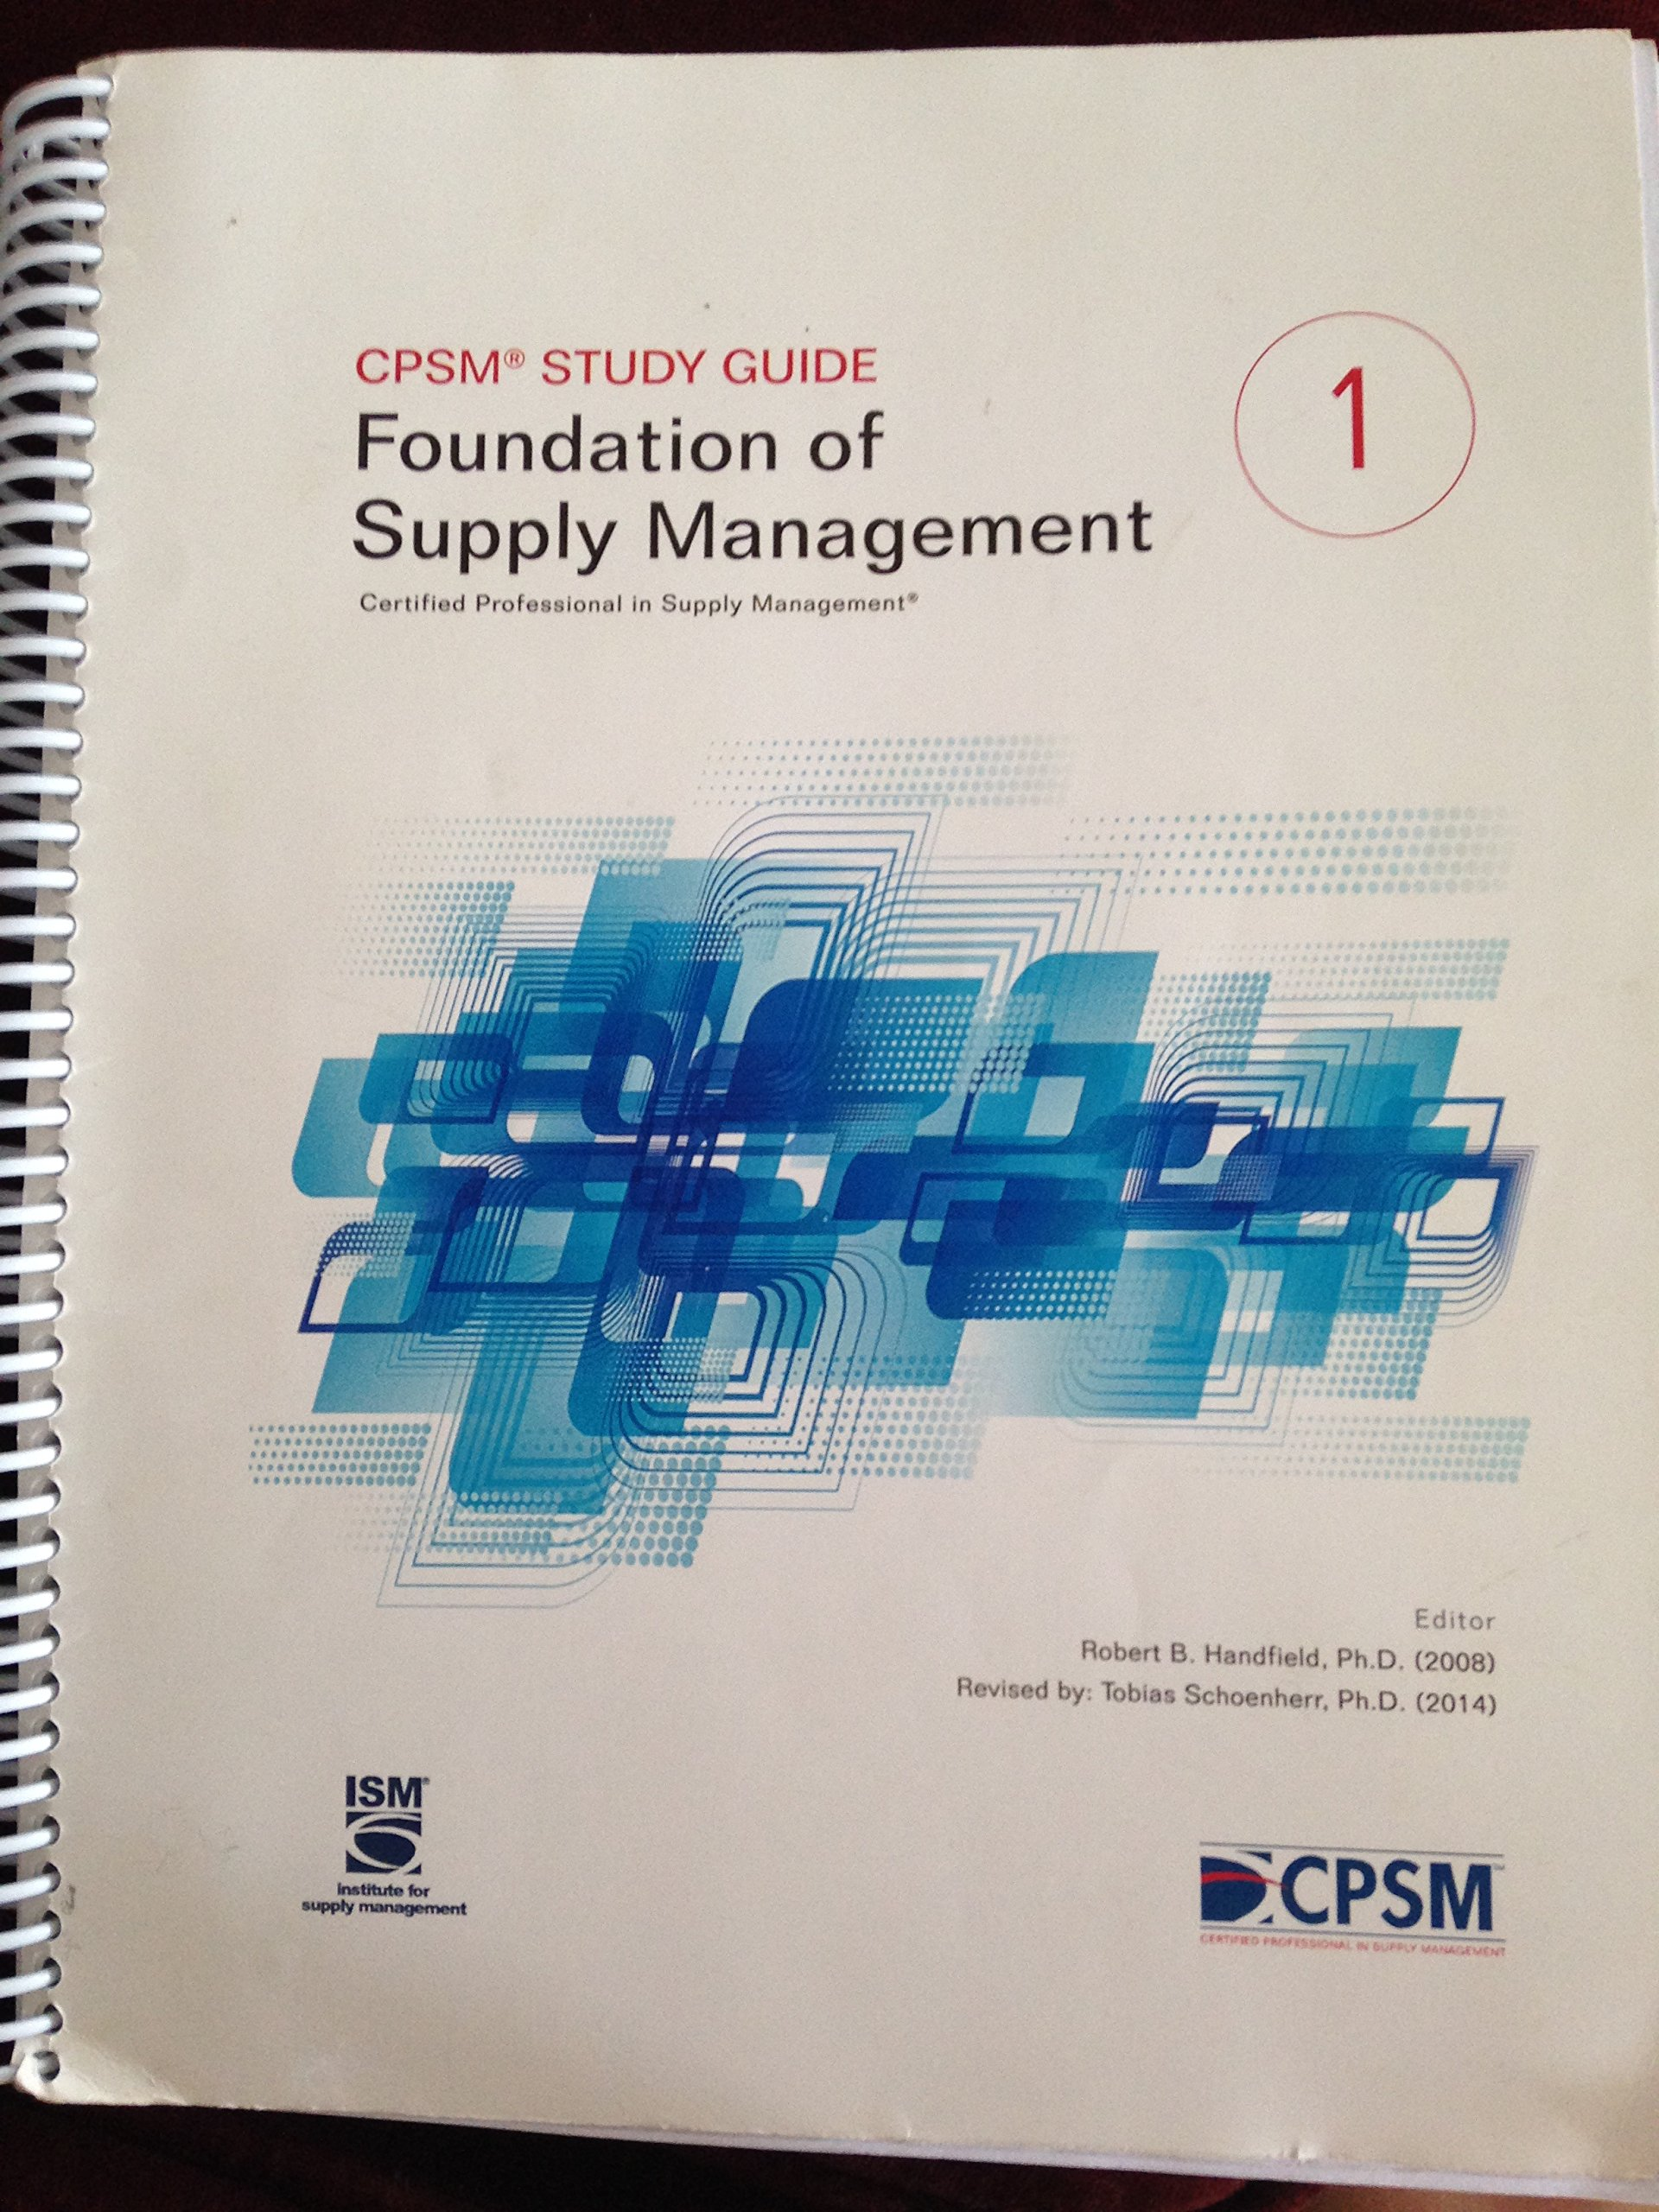 Cpsm study guide: 2nd edition: robert b handfield: 9780996043403.